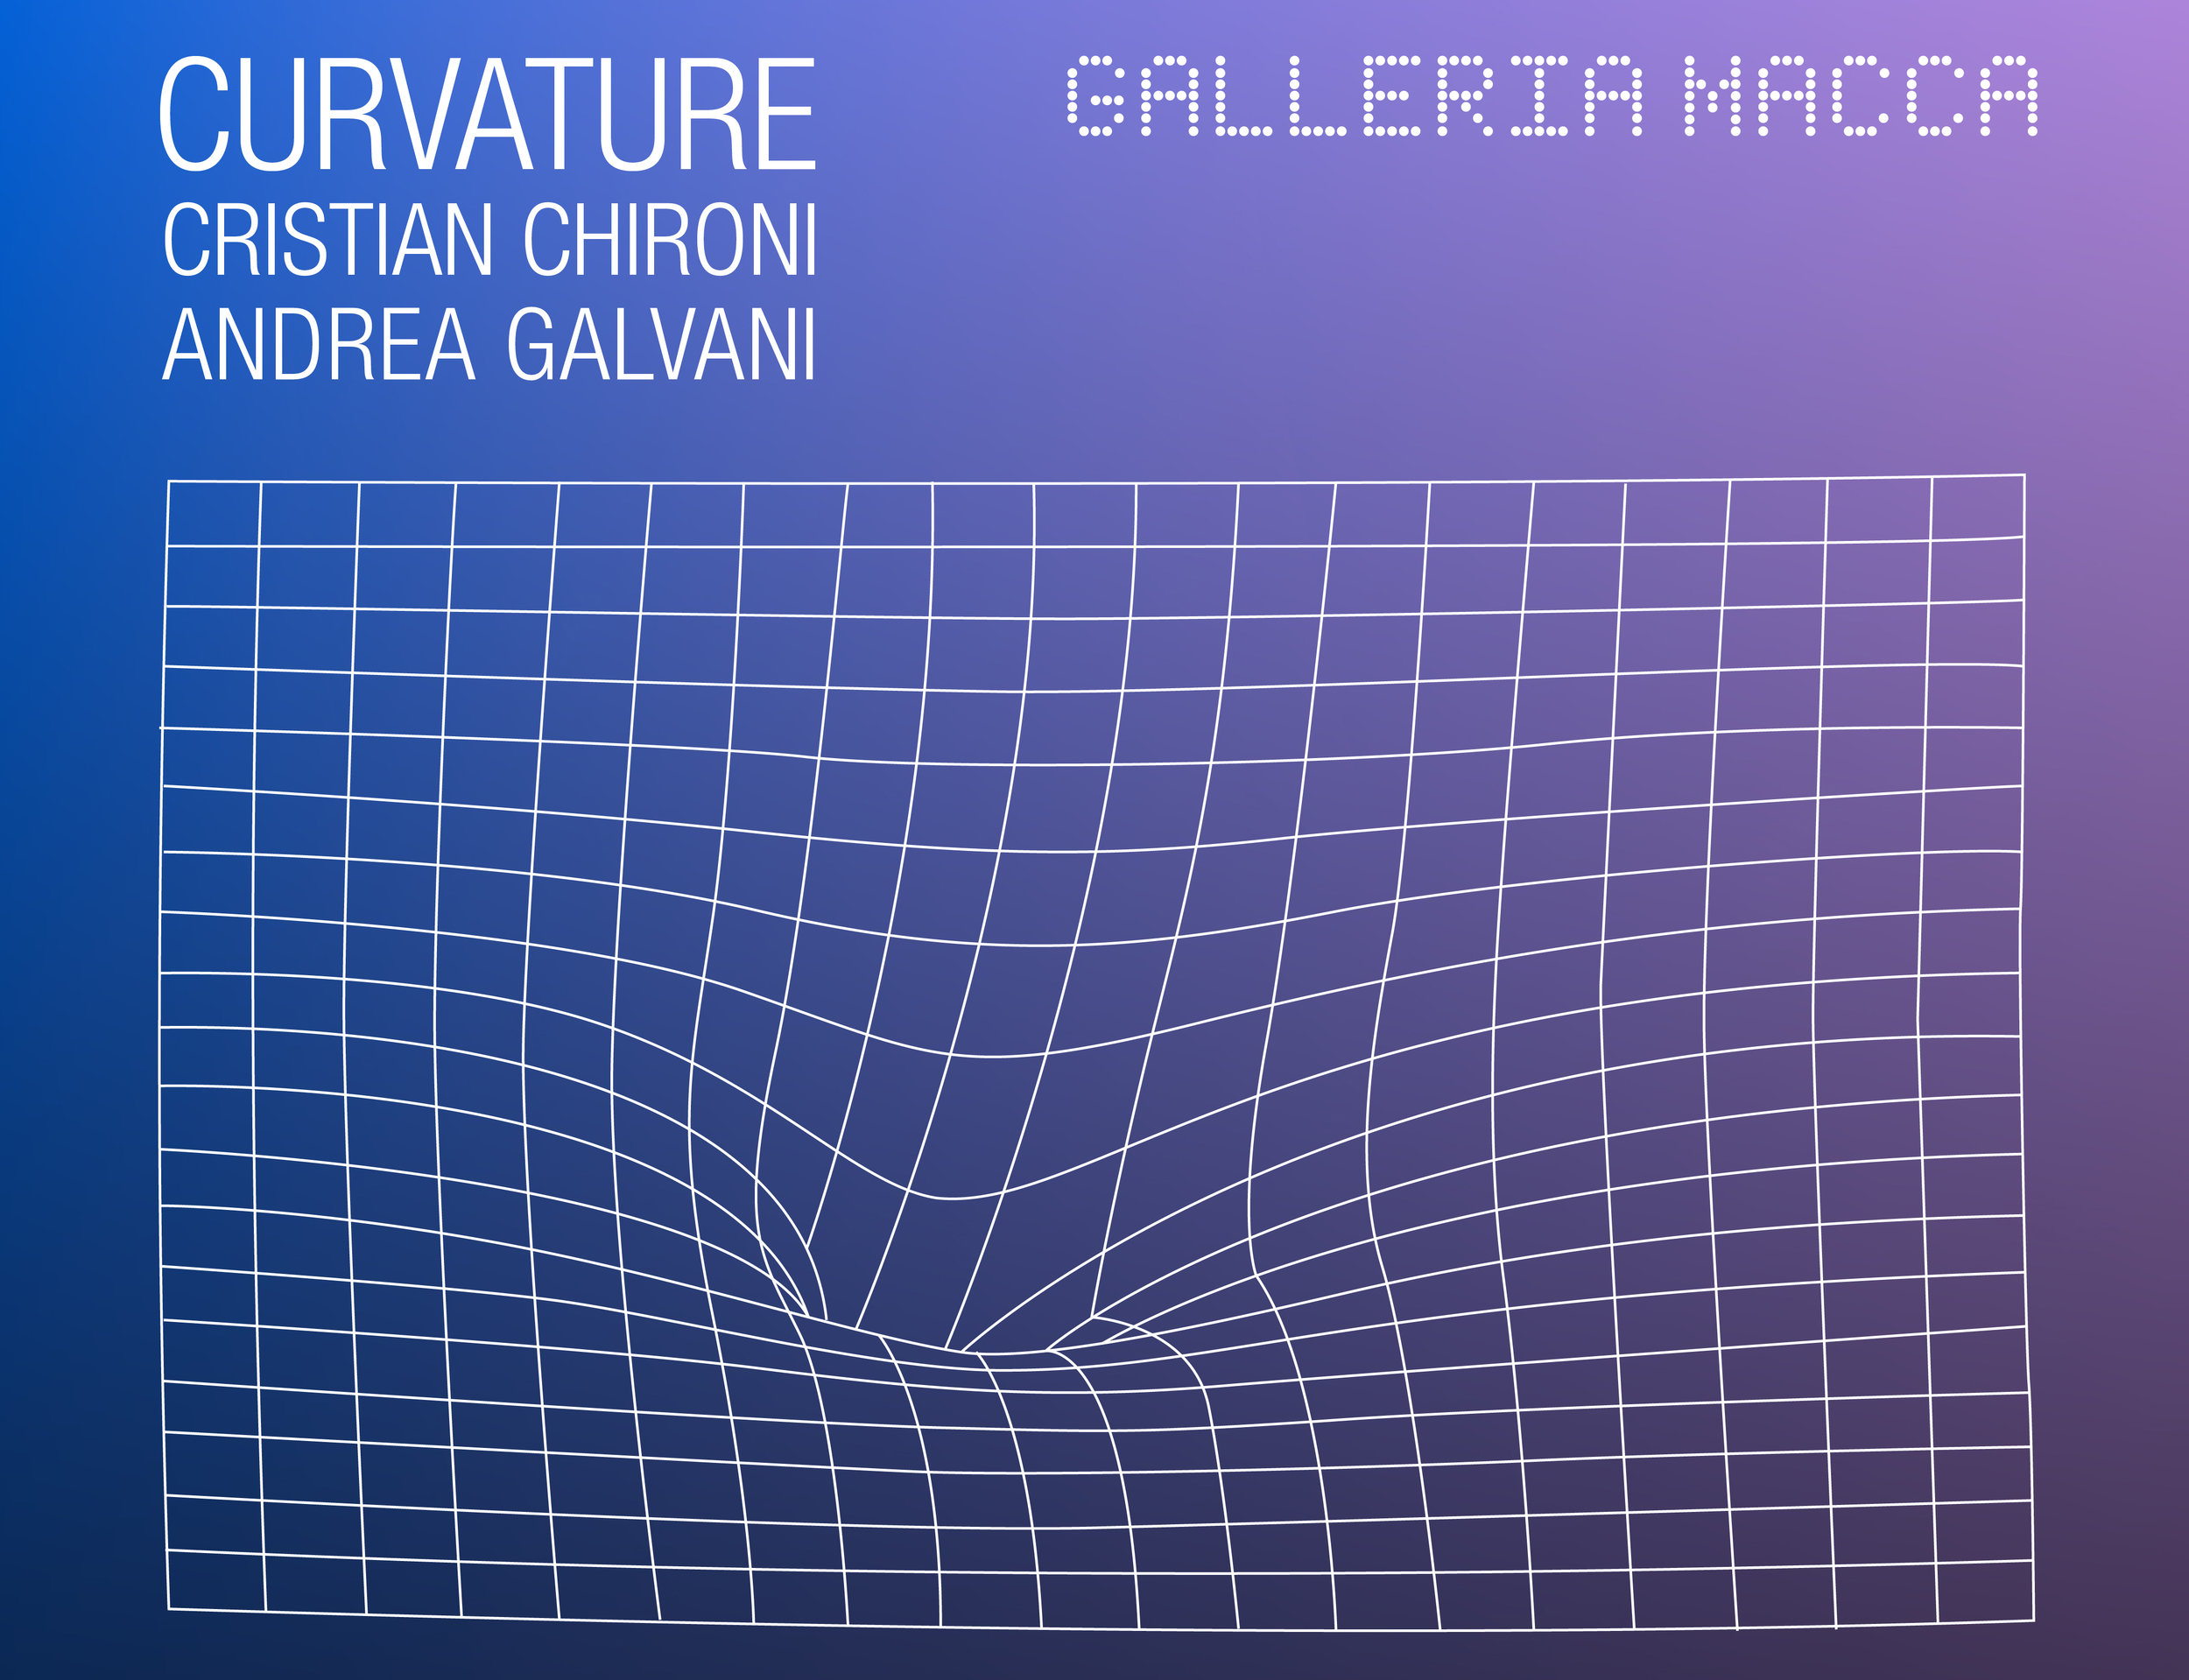 CURVATURE | Andrea Galvani and Cristian Chironi Curated by Efisio Carbone  Galleria Macca  | via Lamarmora 136, Castello, Cagliari 27 July - 20 September 2019 Opening Reception and Performance: 26 July, 7-9 PM    Curvature   is a project by  Andrea Galvani  and  Cristian Chironi . This two-person show was born as a unified intervention specifically designed for Galleria Macca. In this exhibition, their cross-disciplinary research enters into a brilliant dialogue. Suggesting different points of contact, the artists' interpretations of words and absolute concepts are transformed into real architectures of knowledge—engines that express meaning and investigate concepts such as fragility and temporality, matter and universal space.